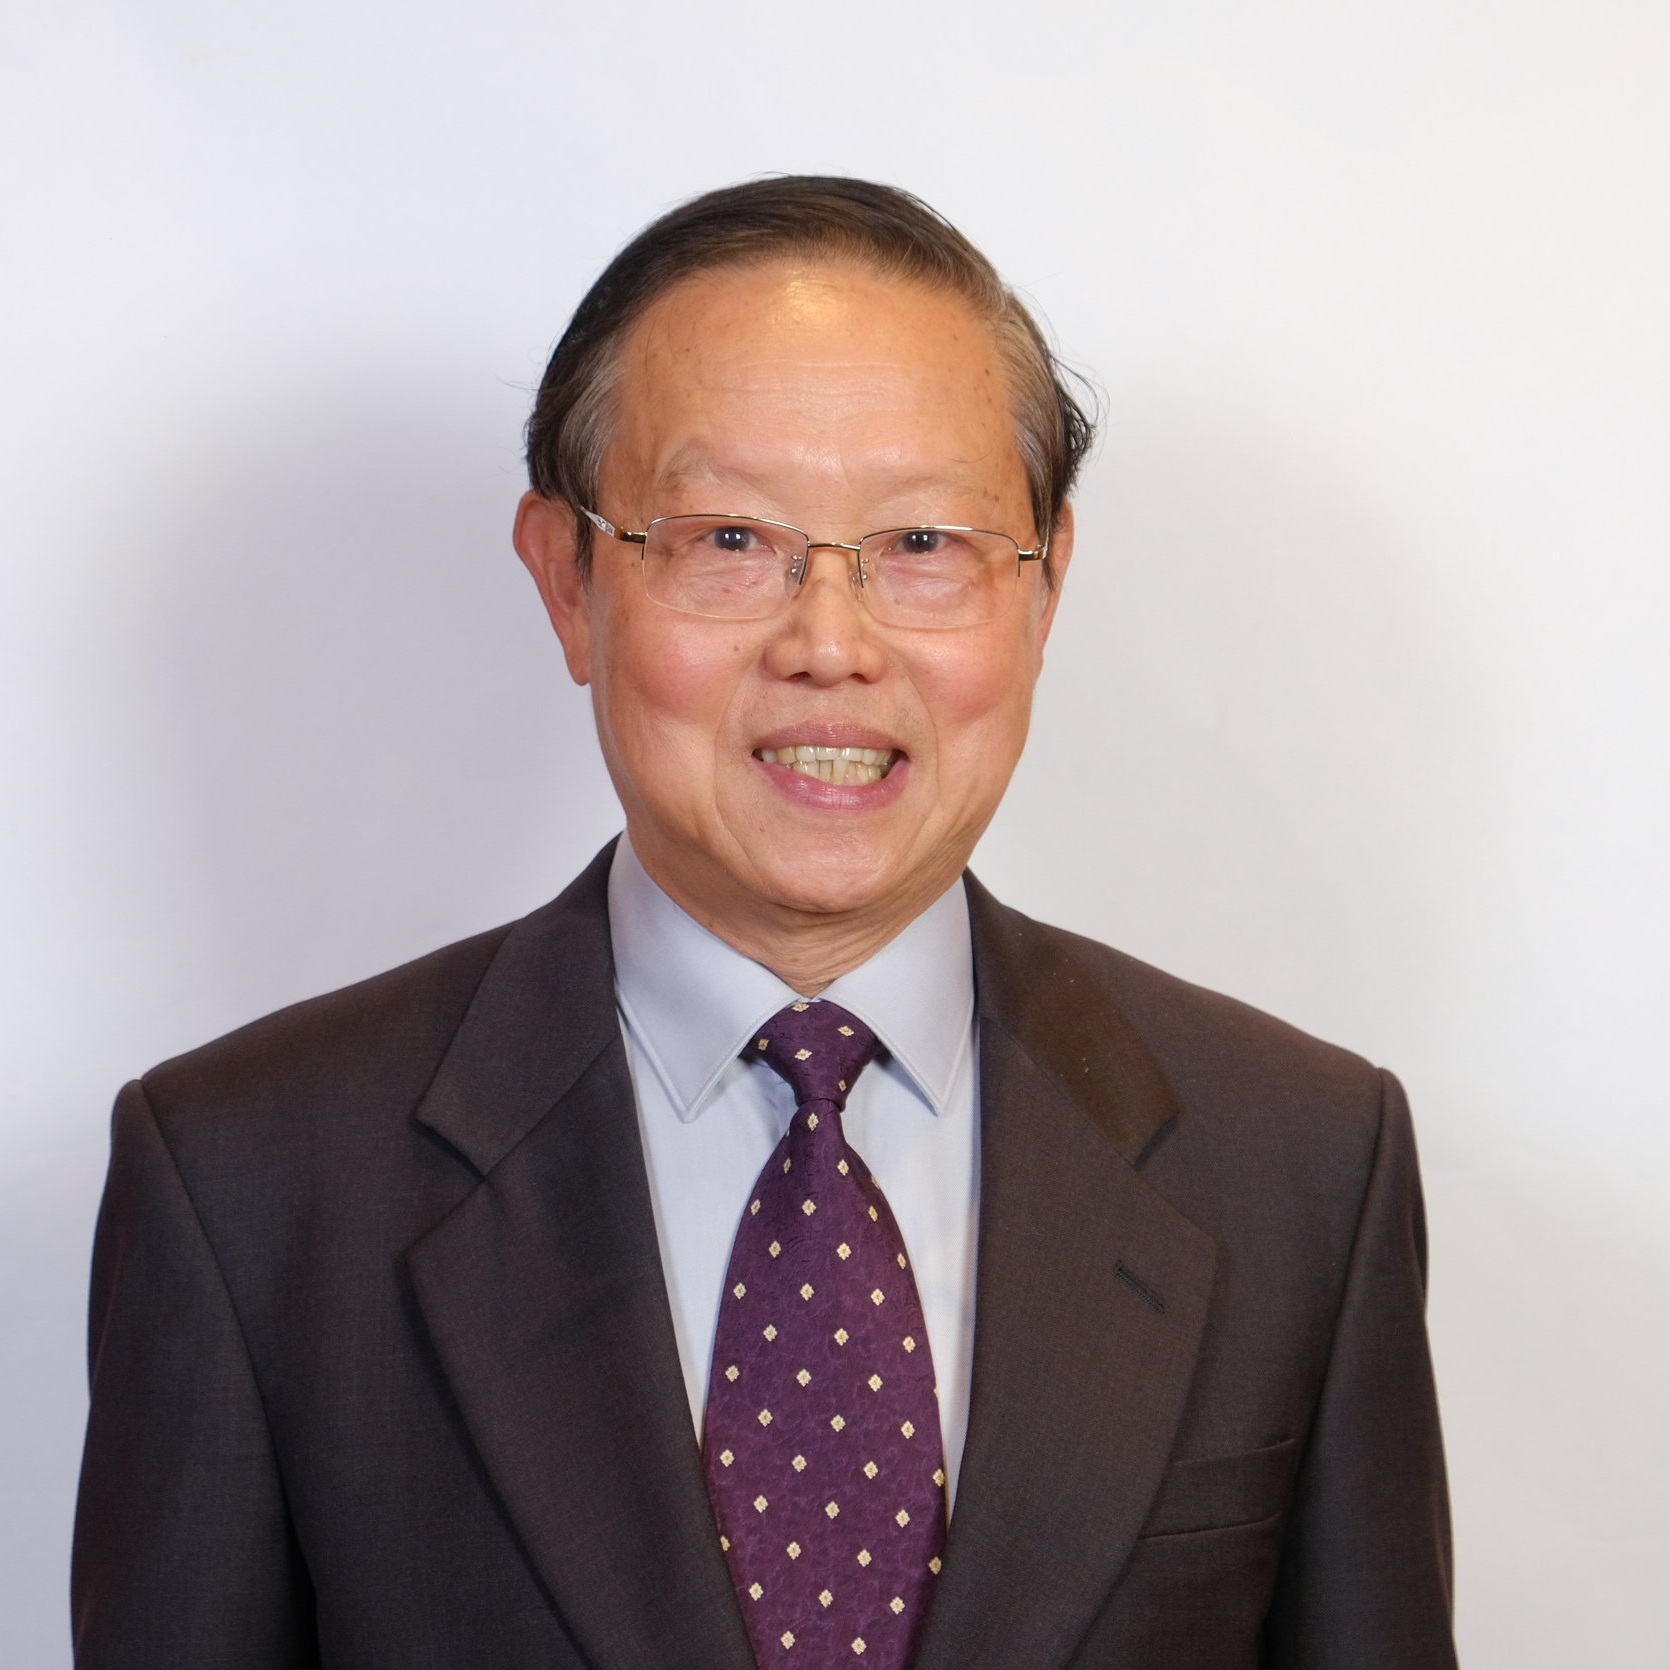 Mr. Winston Low Hee TeckCOUNCIL VICE CHAIRMAN - Managing Director - Feoso Energy (Shanghai) Haixia, Jingjiang, China